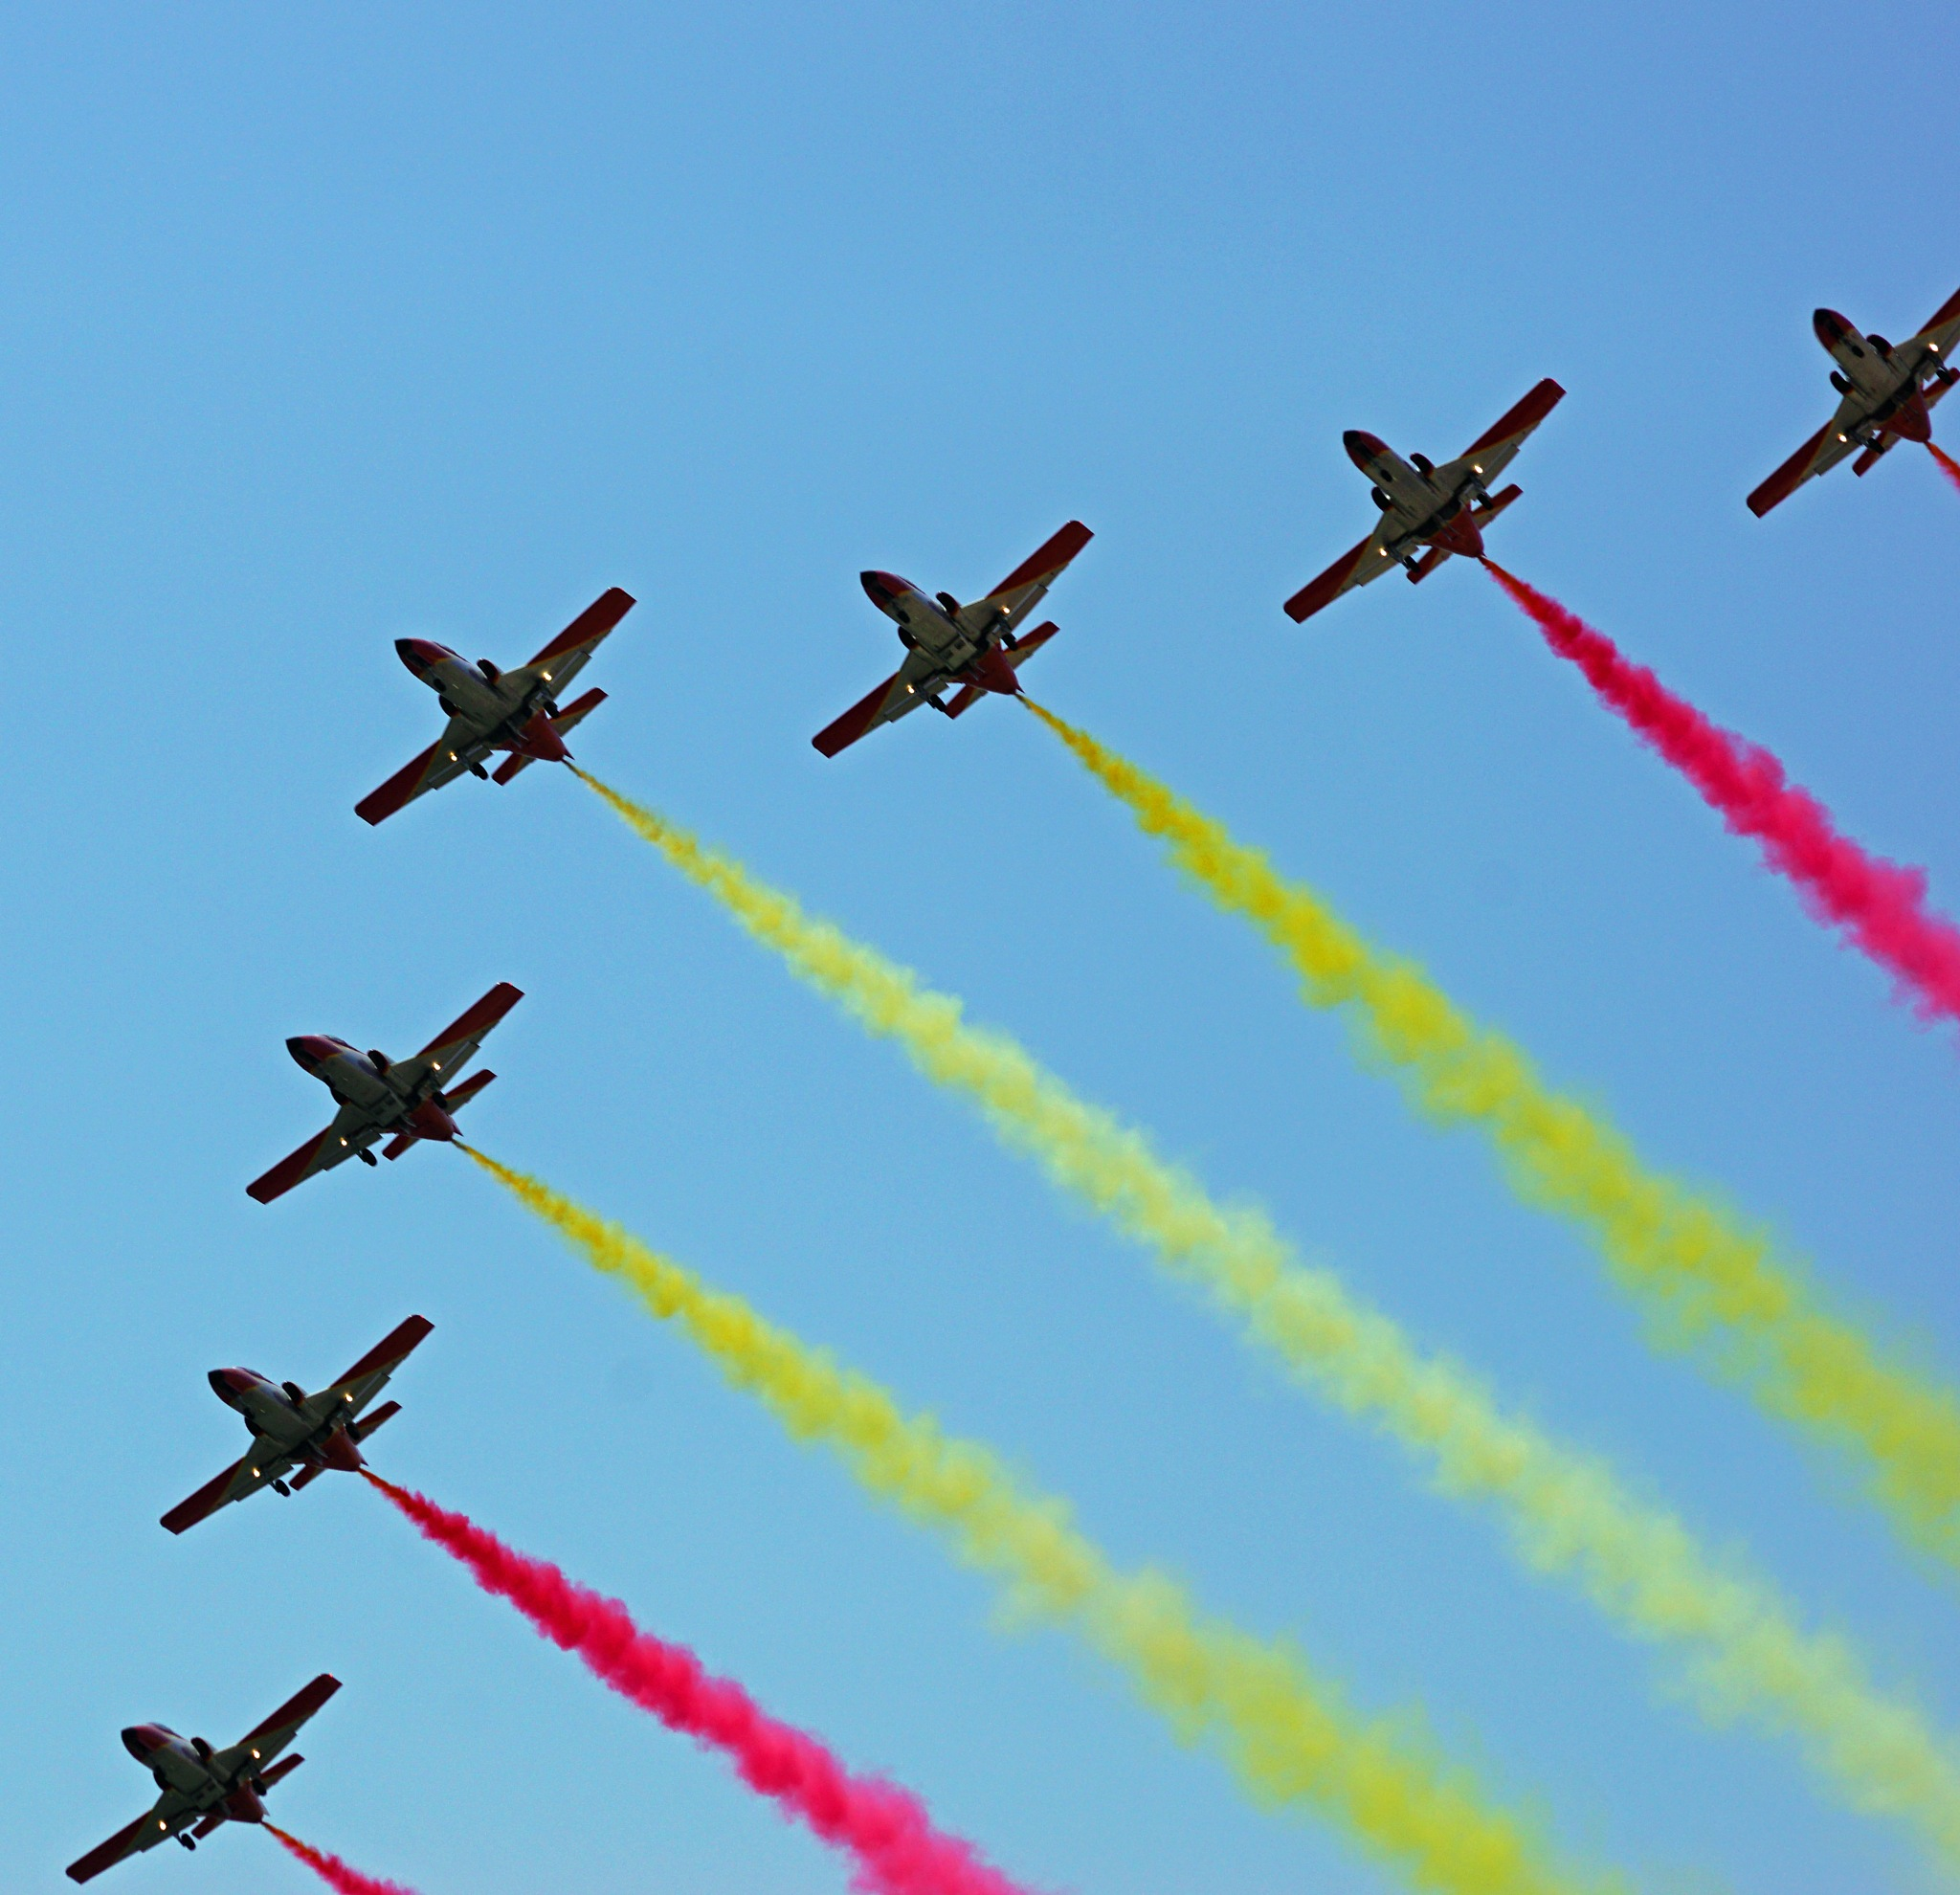 FLAG FORMATION by shotters